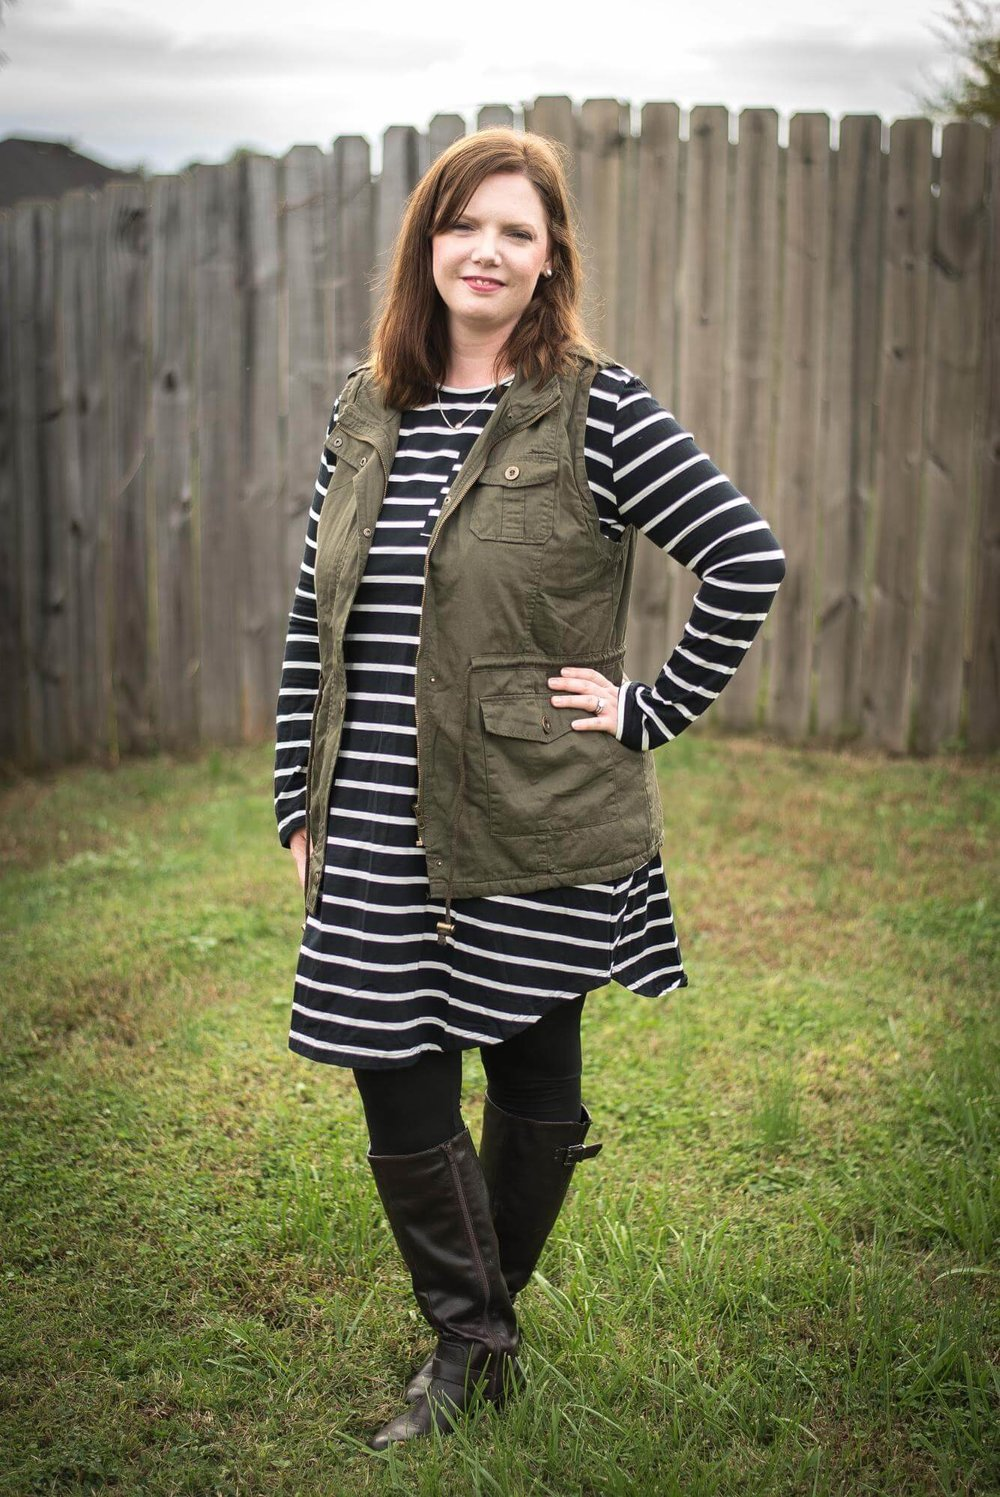 Stripe swing dress + utility vest + leggings + boots... simple but comfy mom outfit! Comfy but stylish mom outfit ideas for fall. These outfits are fashionable but not too trendy! They are all created from a wardrobe capsule-like plan for moms created by the blog. Such a helpful guide for not looking frumpy! And I love the guest blogger's boutique... cute stuff that is actually affordable! Shows you how to style a simple black dress, leopard scarf, denim jacket, striped swing dress, utility vest, plaid scarf, and tunic top! #fall #easy #clothes #mom #fashion #outfits #tips # ideas #easy #style